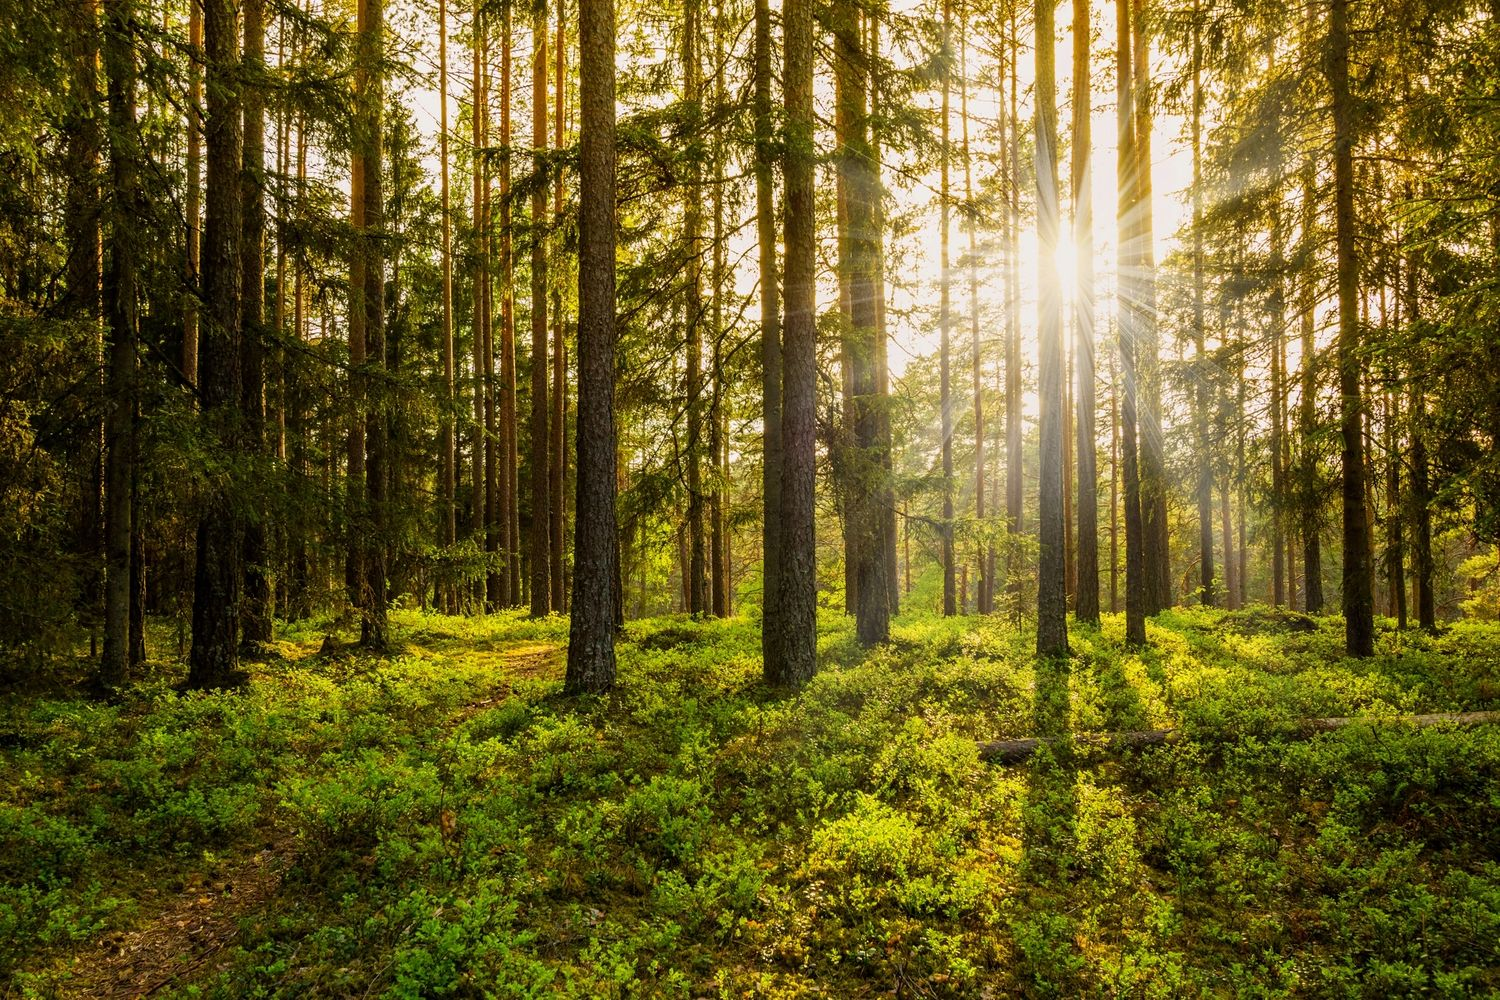 Forest touched by sun rays